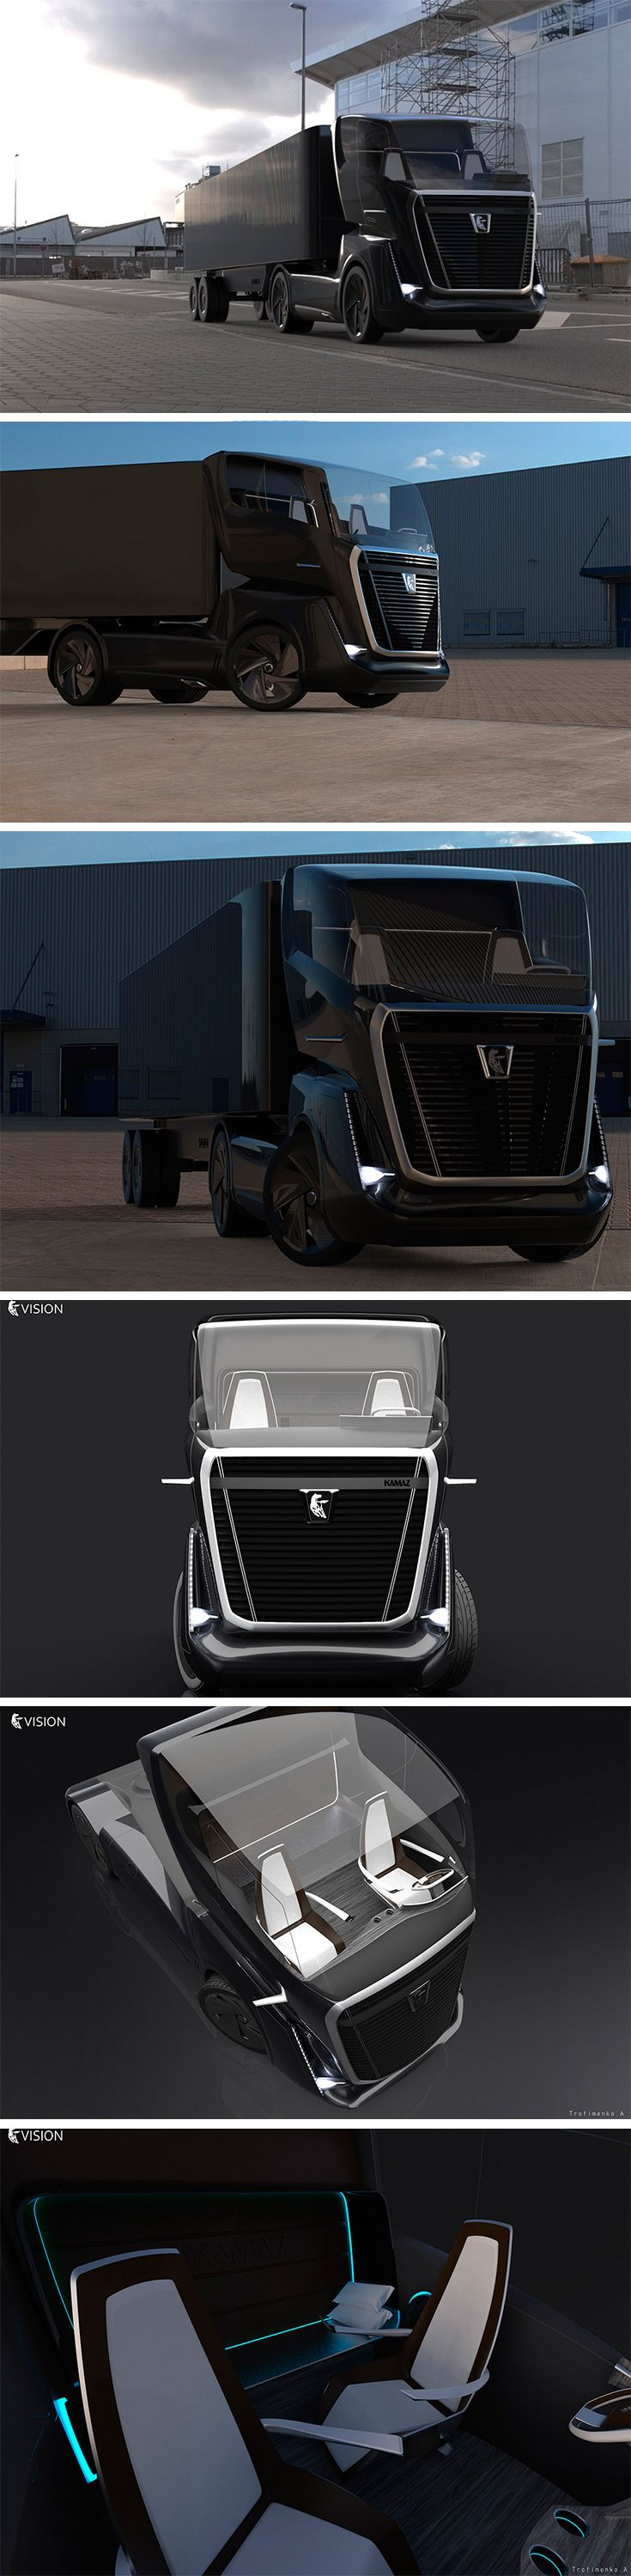 43 Best Cars Images On Pinterest Vintage Dream And Power Top Wiring Diagram For 1942 47 Chevrolet Passenger Cabriolet Artyom Trofimenkos Concept Kamaz Vision Trucks Design Does What It Can To Minimize Wind Resistance With